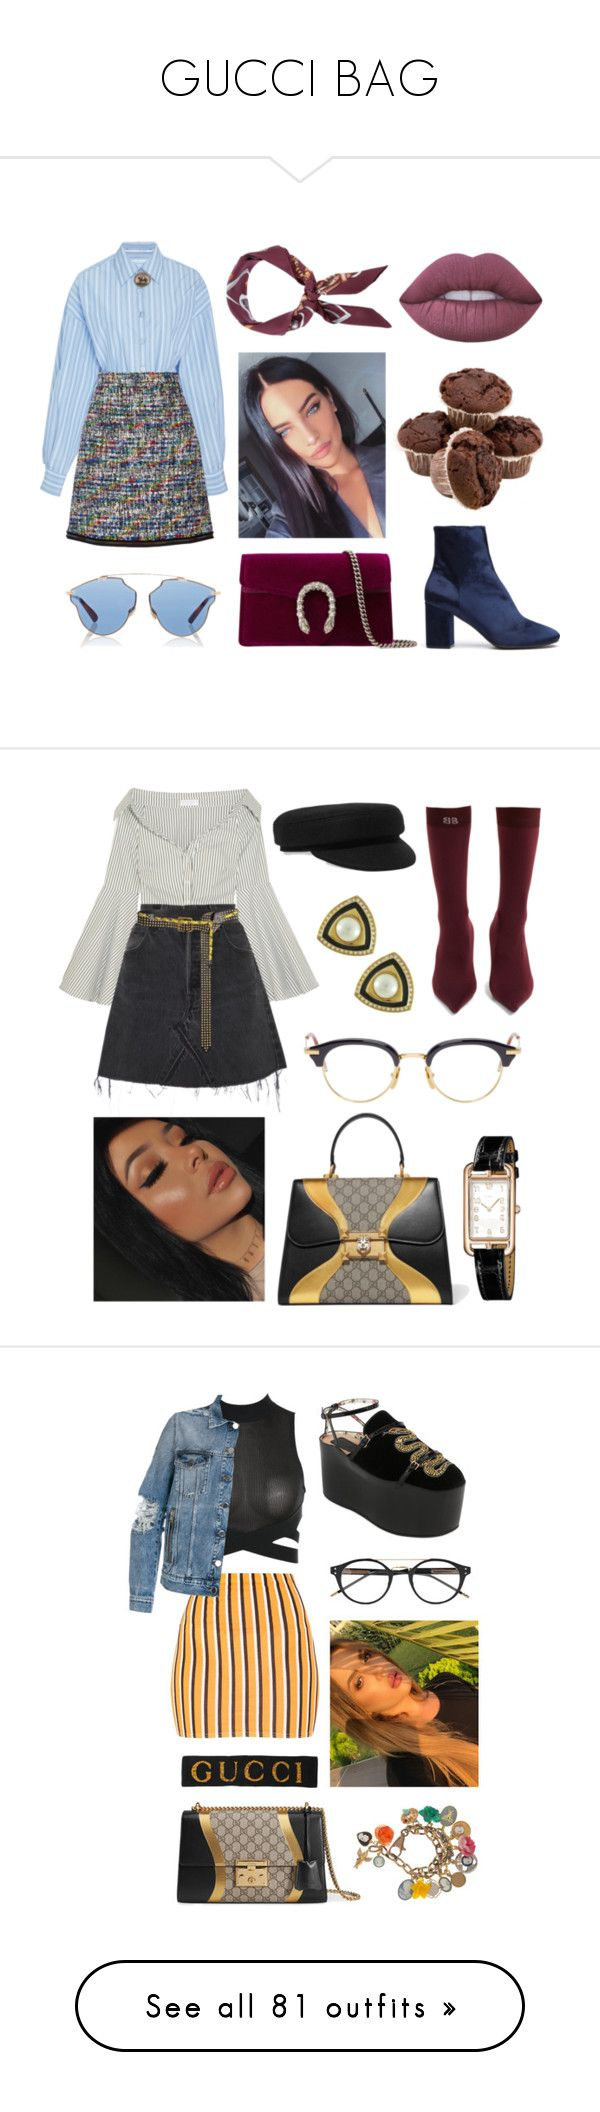 """GUCCI BAG"" by denisaalexandraa ❤ liked on Polyvore featuring Rosetta Getty, Christian Dior, Gucci, Boutique Moschino, Balenciaga, Ralph Lauren Blue Label, Lime Crime, Caroline Constas, RE/DONE and Isabel Marant"